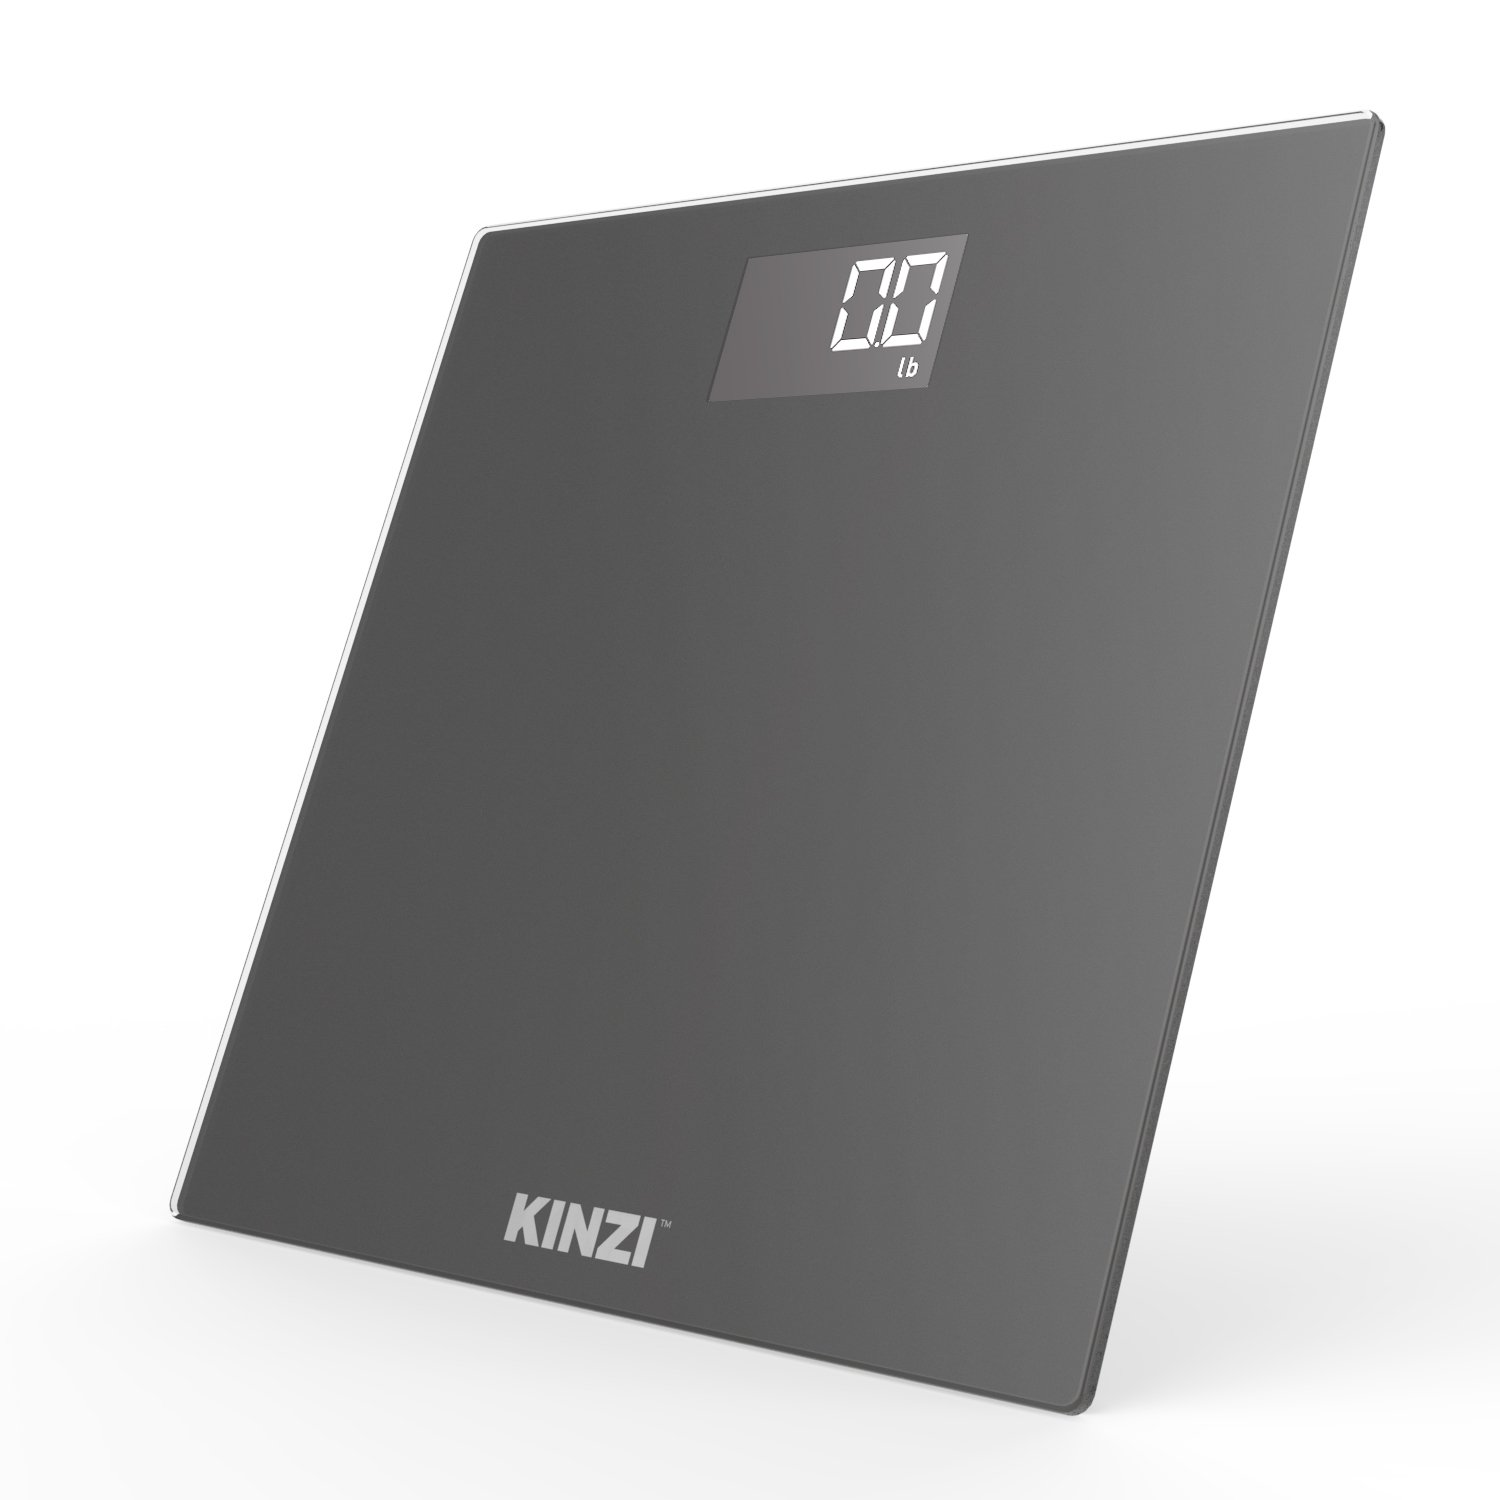 Kinzi Precision Digital Bathroom Scale w  Extra Large. Amazon com  Body Weight Scales  Health   Household  Digital